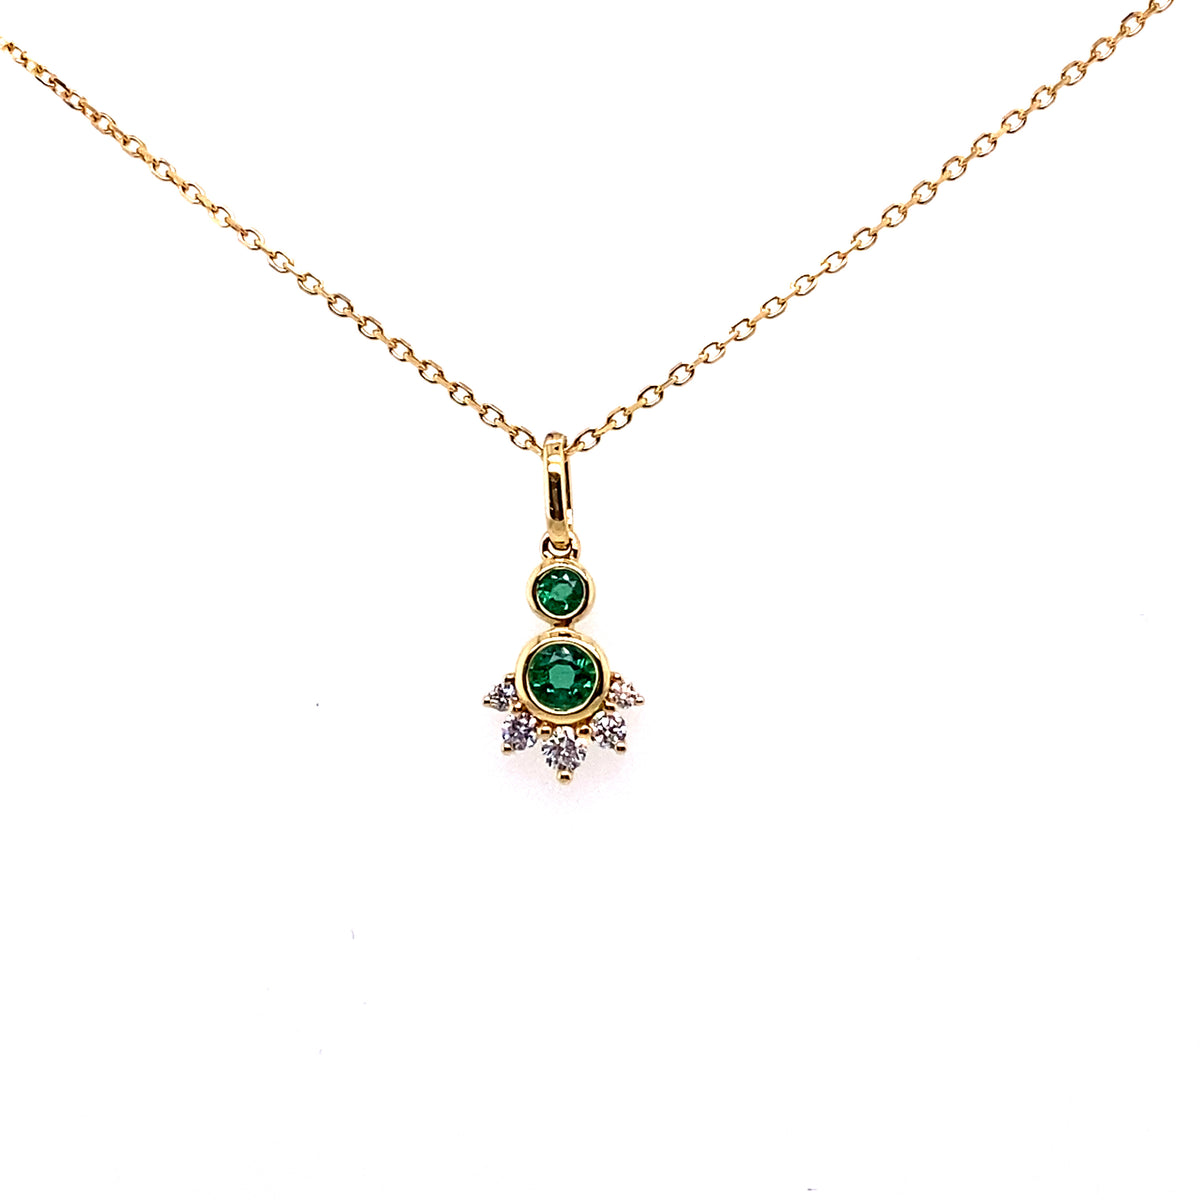 18ct Yellow Gold Diamond and Emerald Pendant